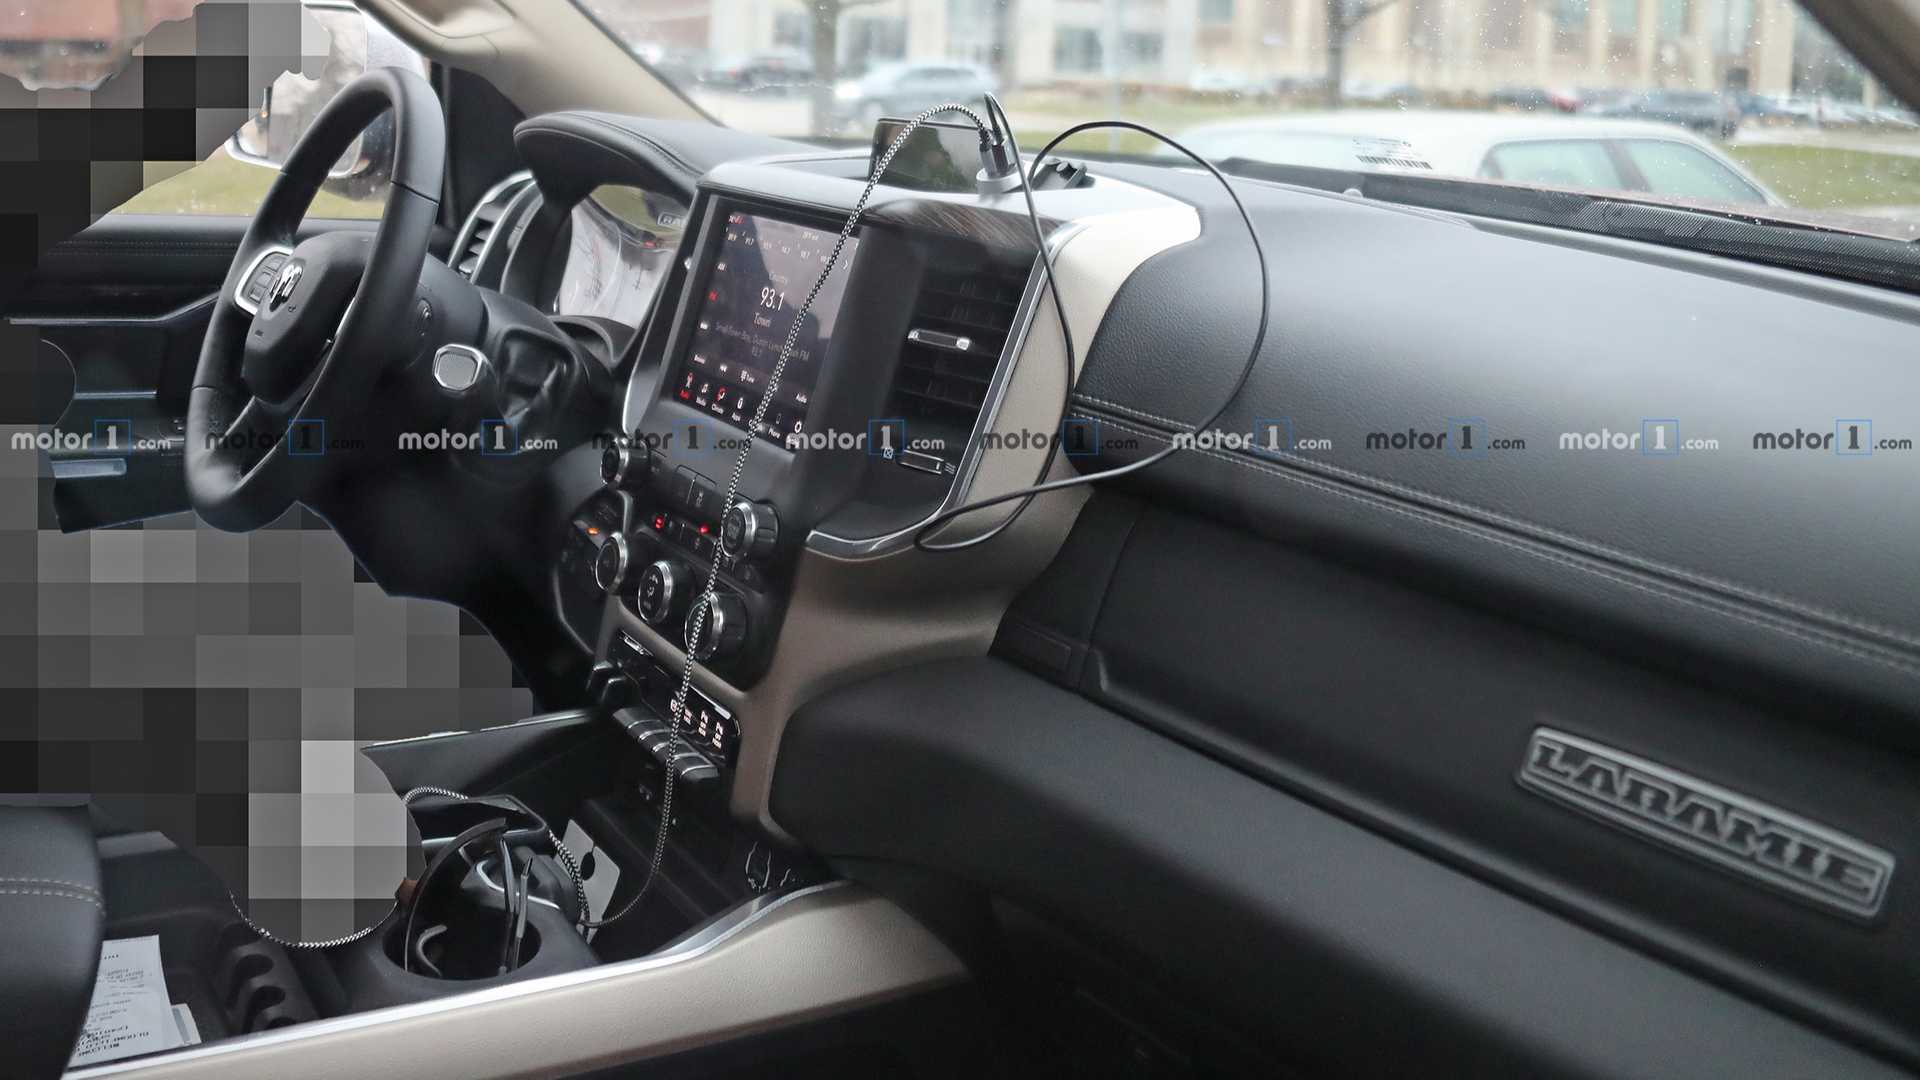 88 Best 2020 Dodge Interior Images